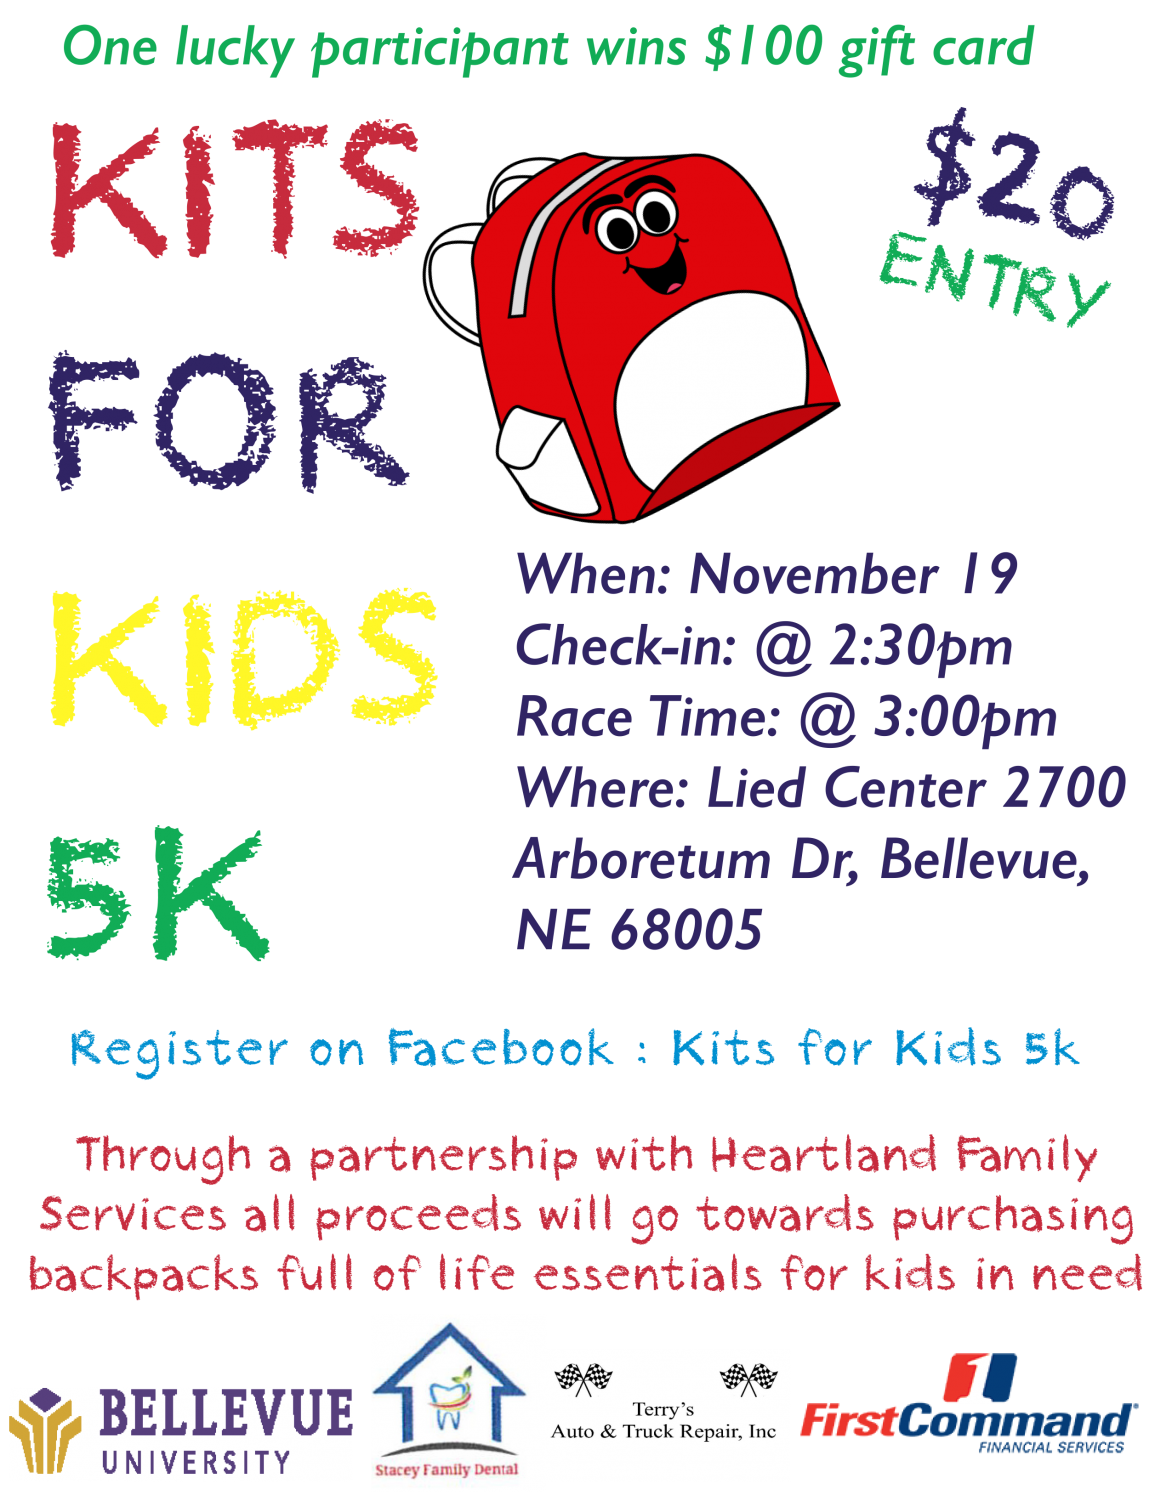 This flyer provides the details of the 5K fundraiser.